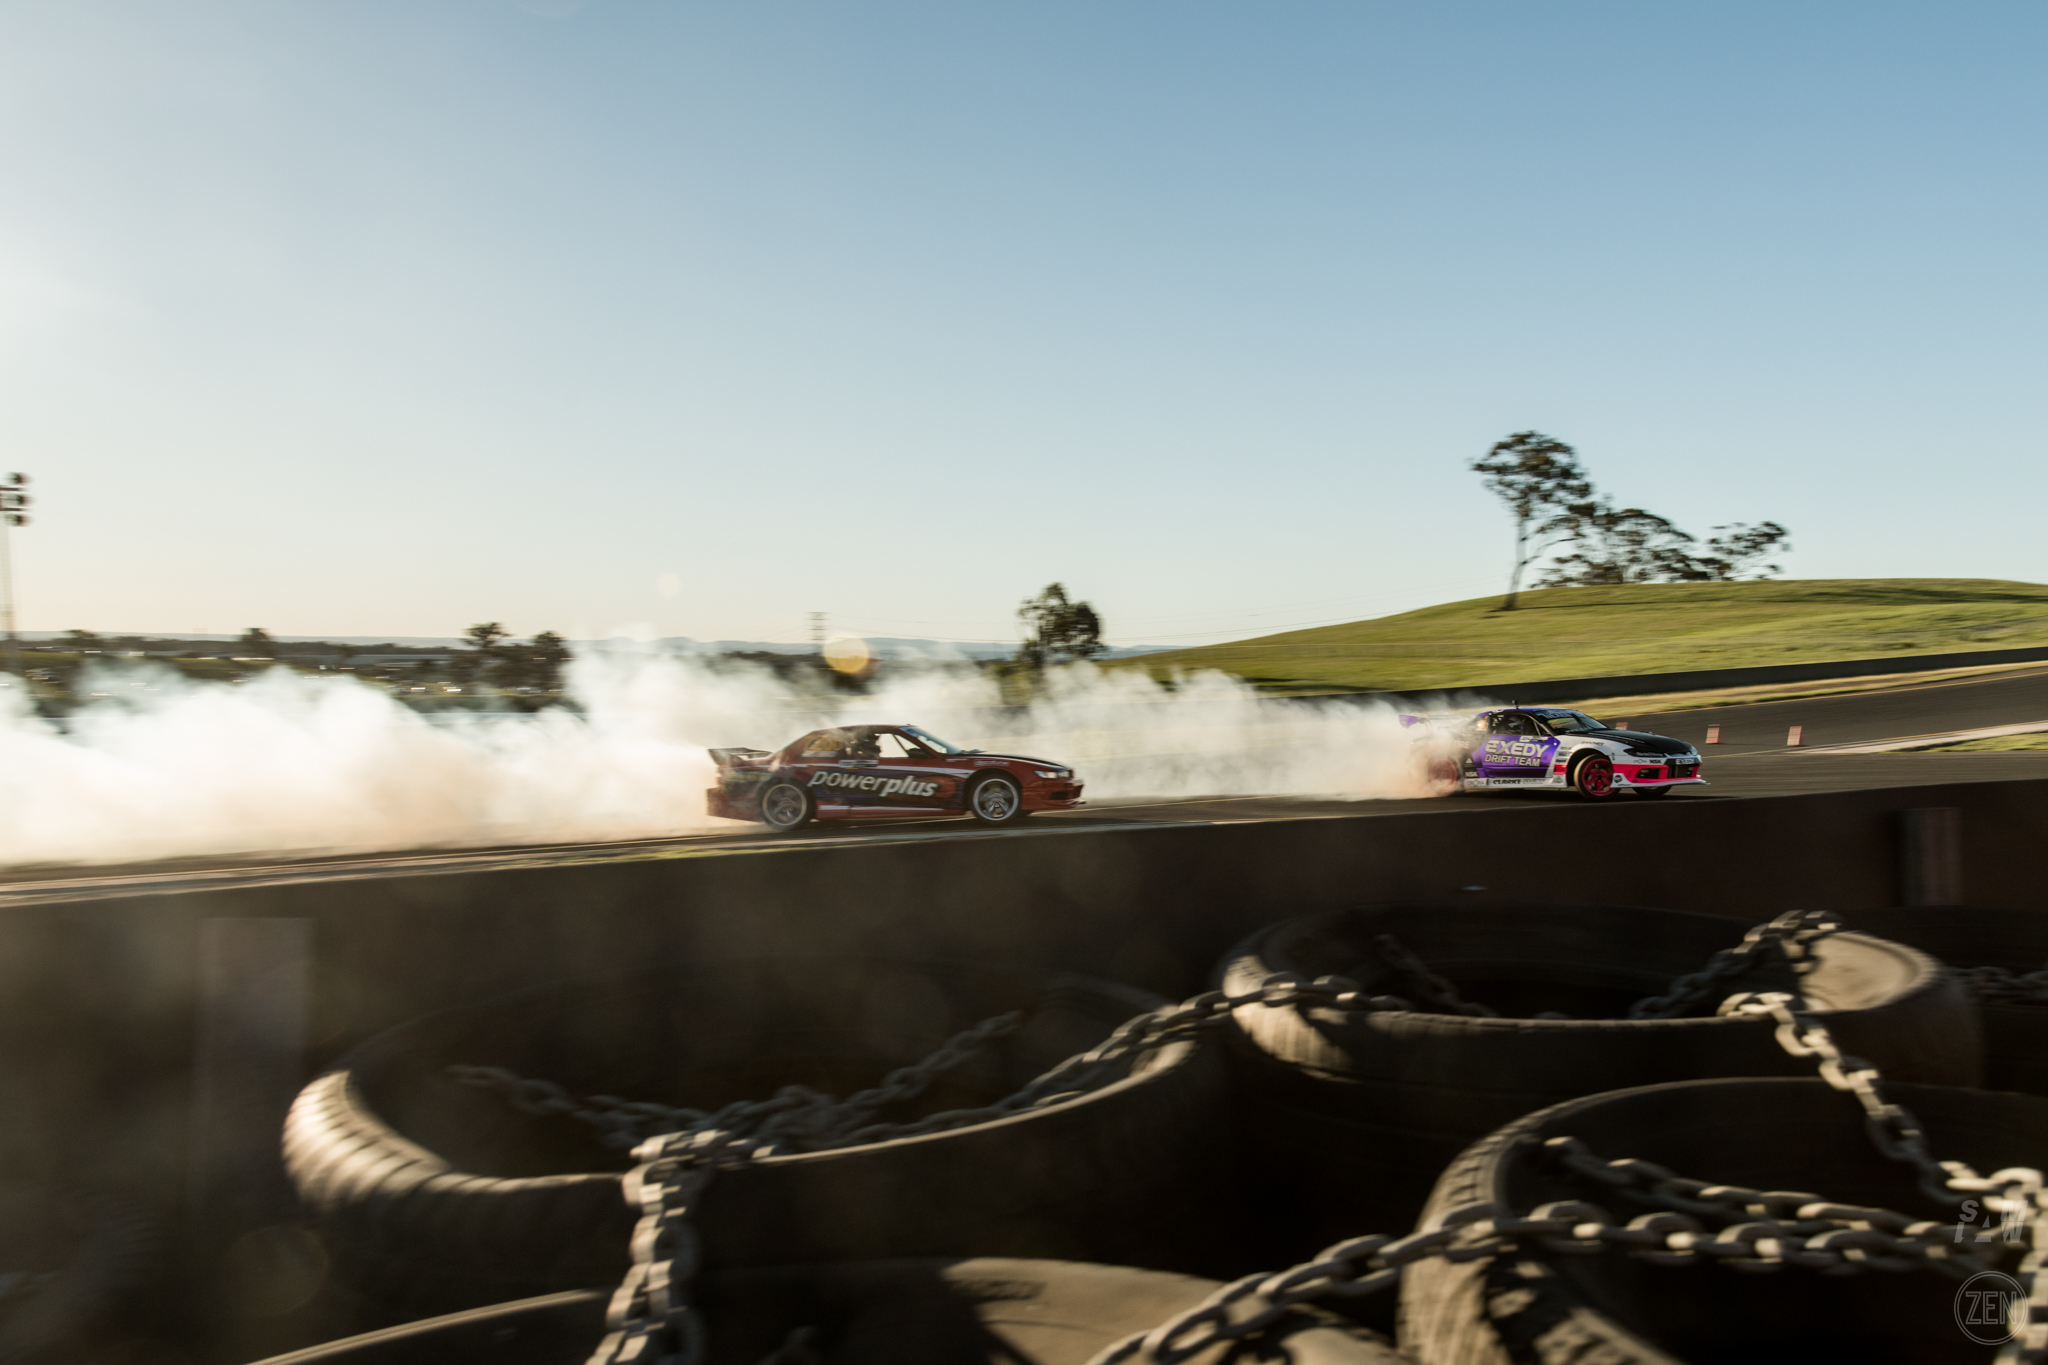 2019-10-18 - WTAC Day 01 062